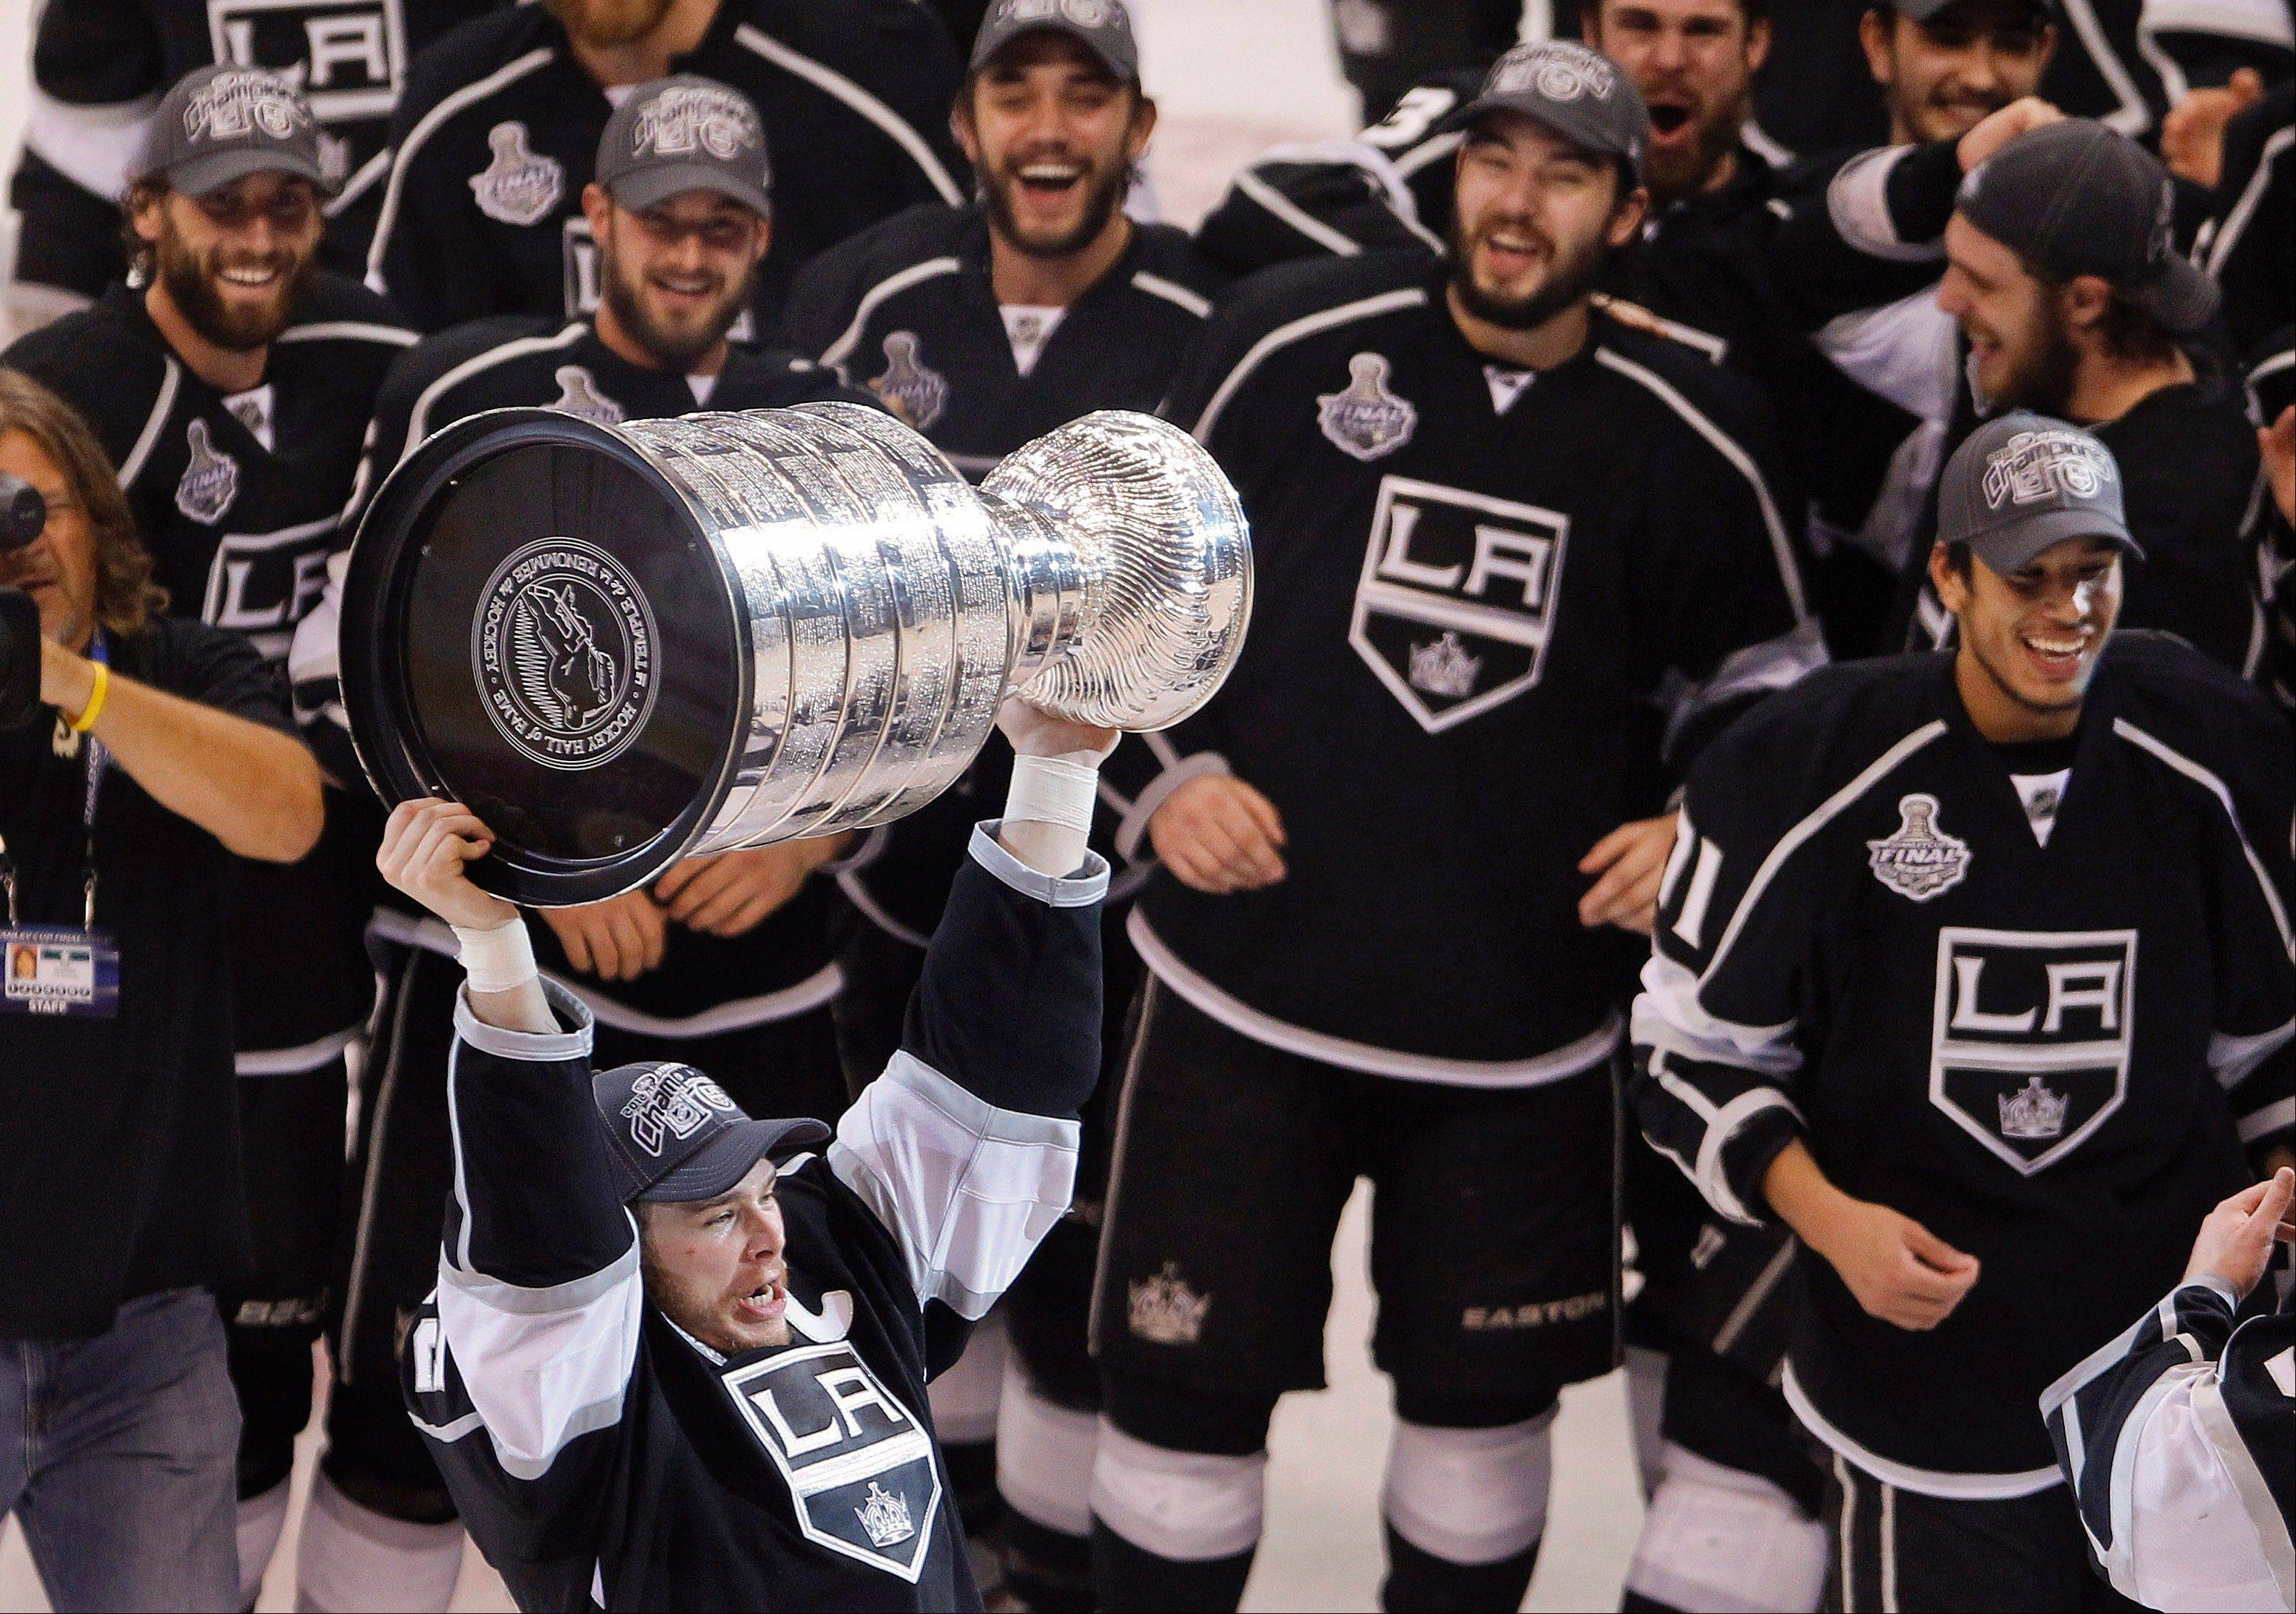 Los Angeles Kings captain Dustin Brown holds up the Stanley Cup.